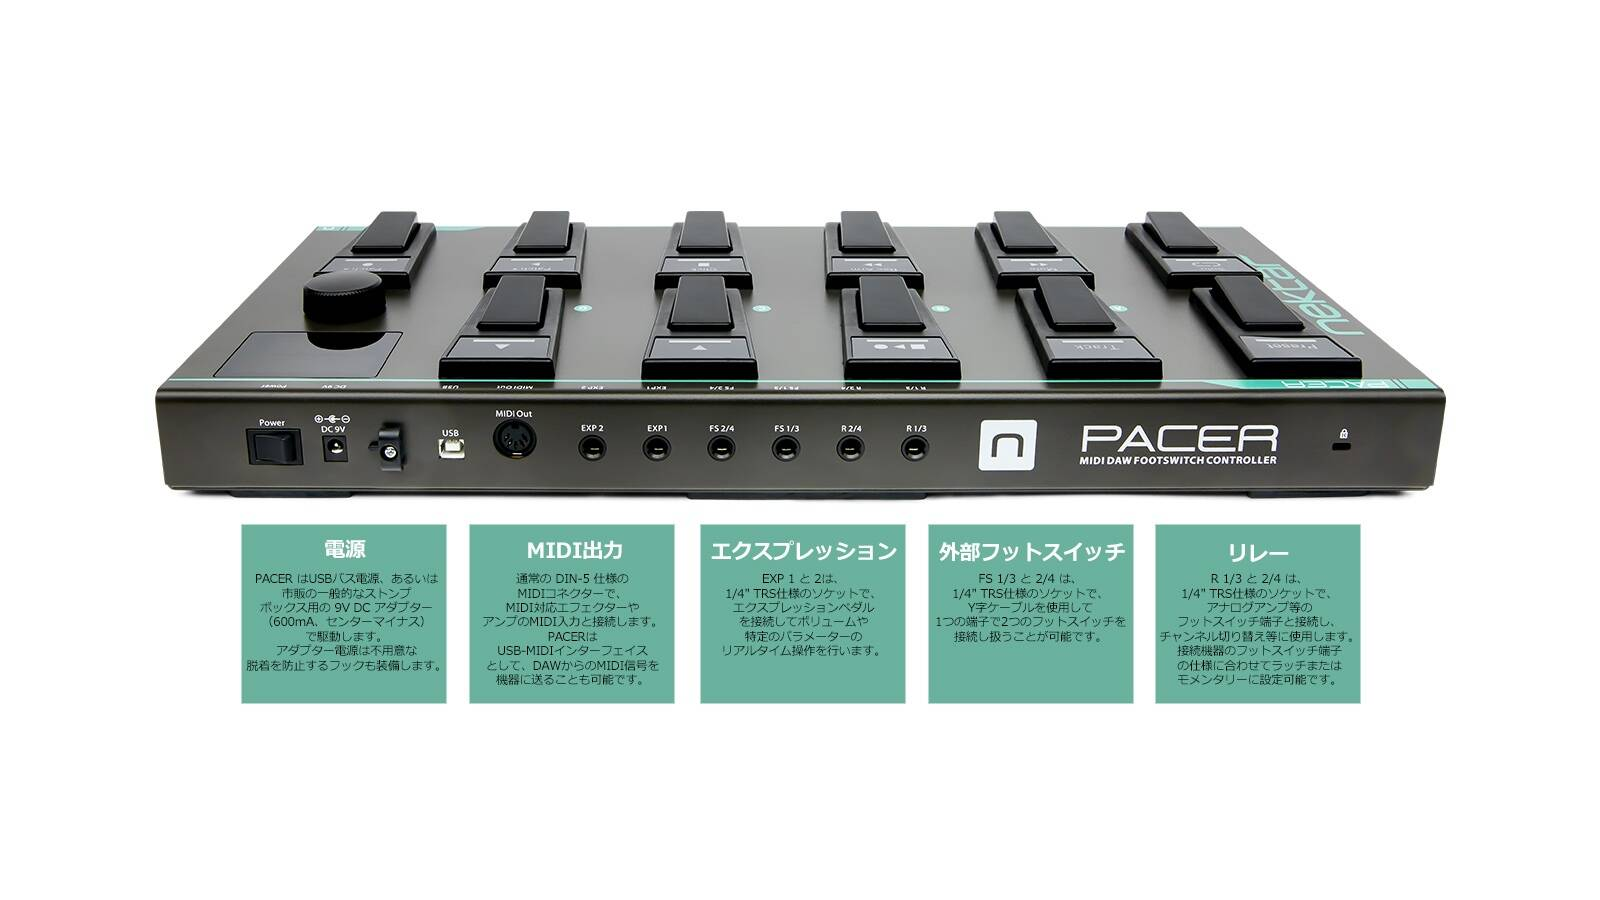 pacer-image-2